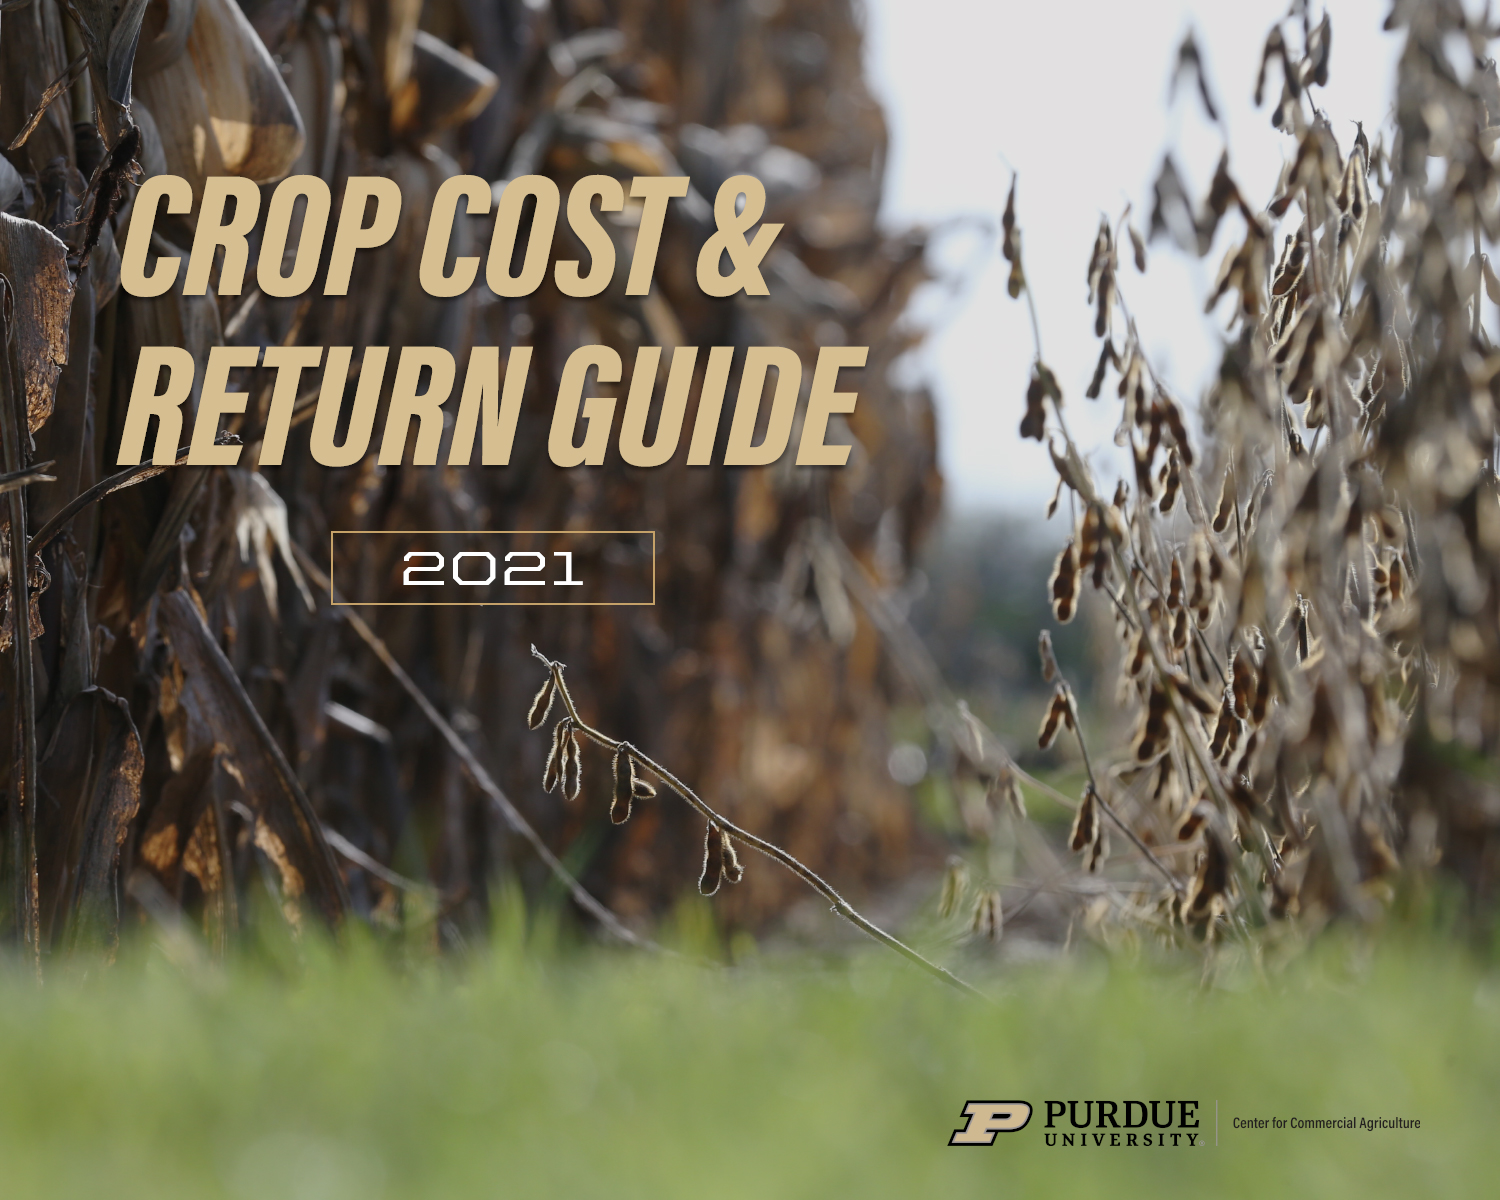 CropCost&ReturnGuide_Featured